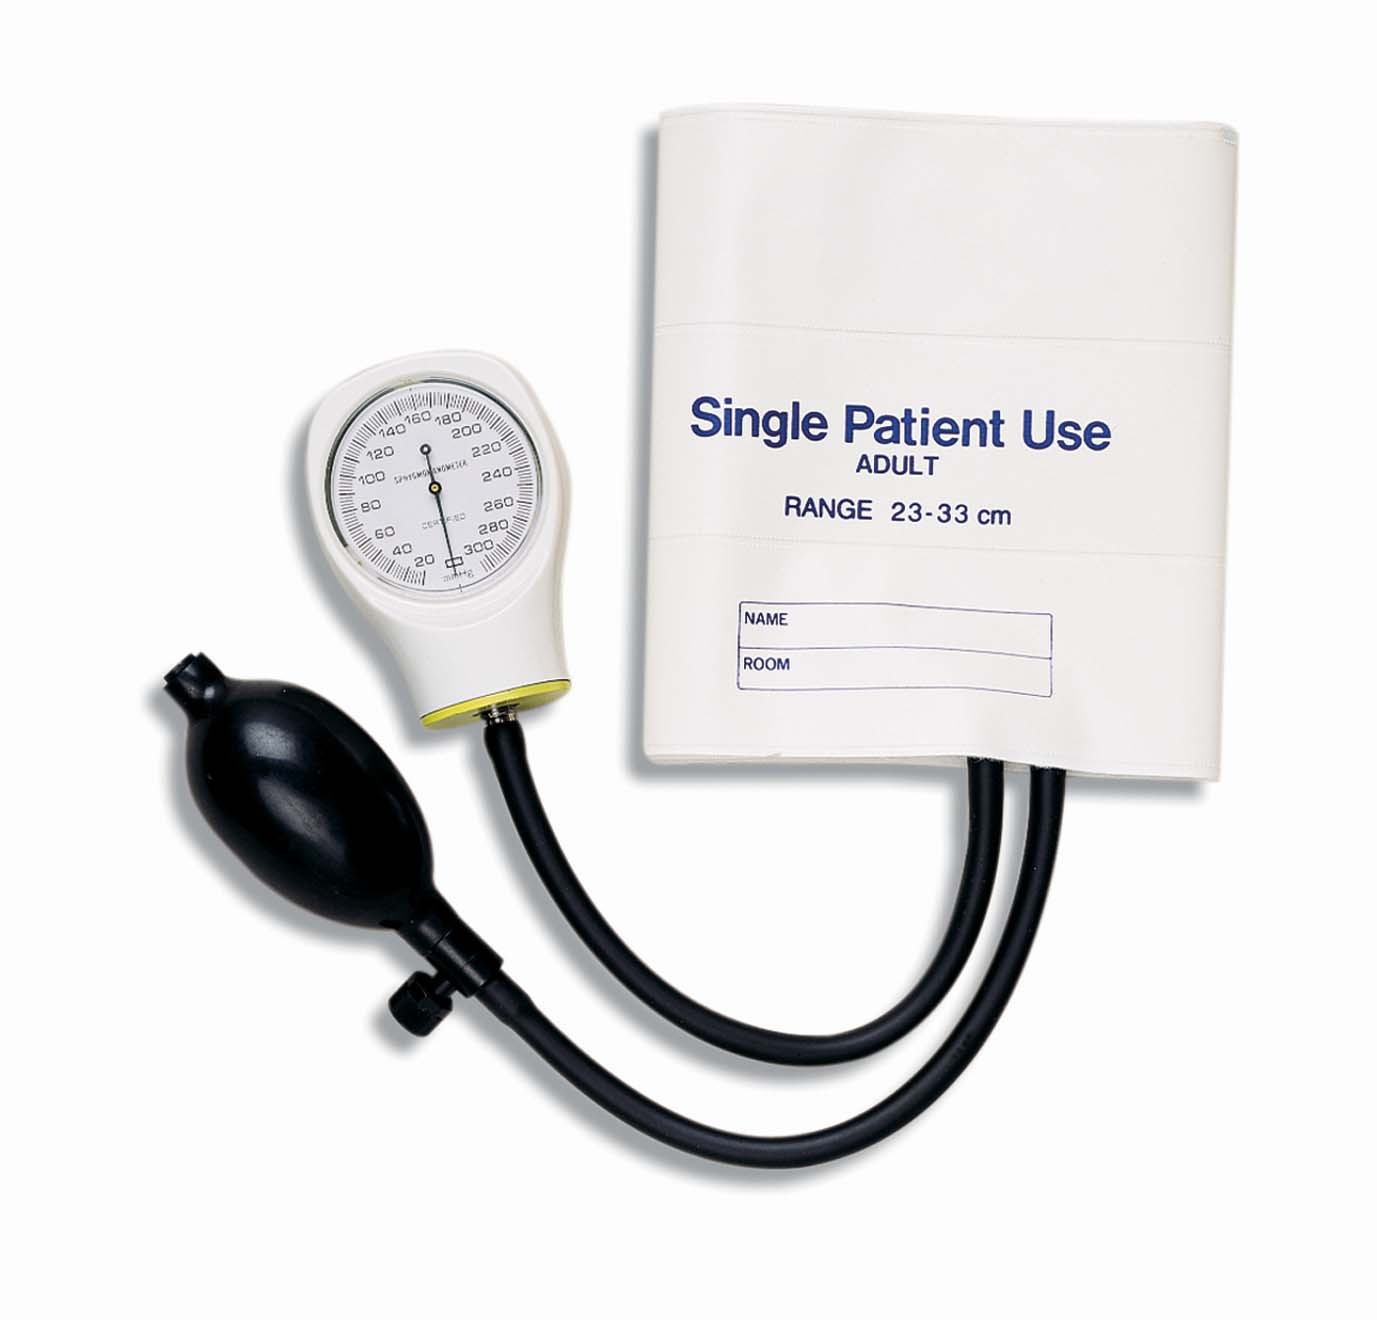 single-patient-use-sphygmomanometer-large-adult-white-5-box-06-148-196-lr.jpg